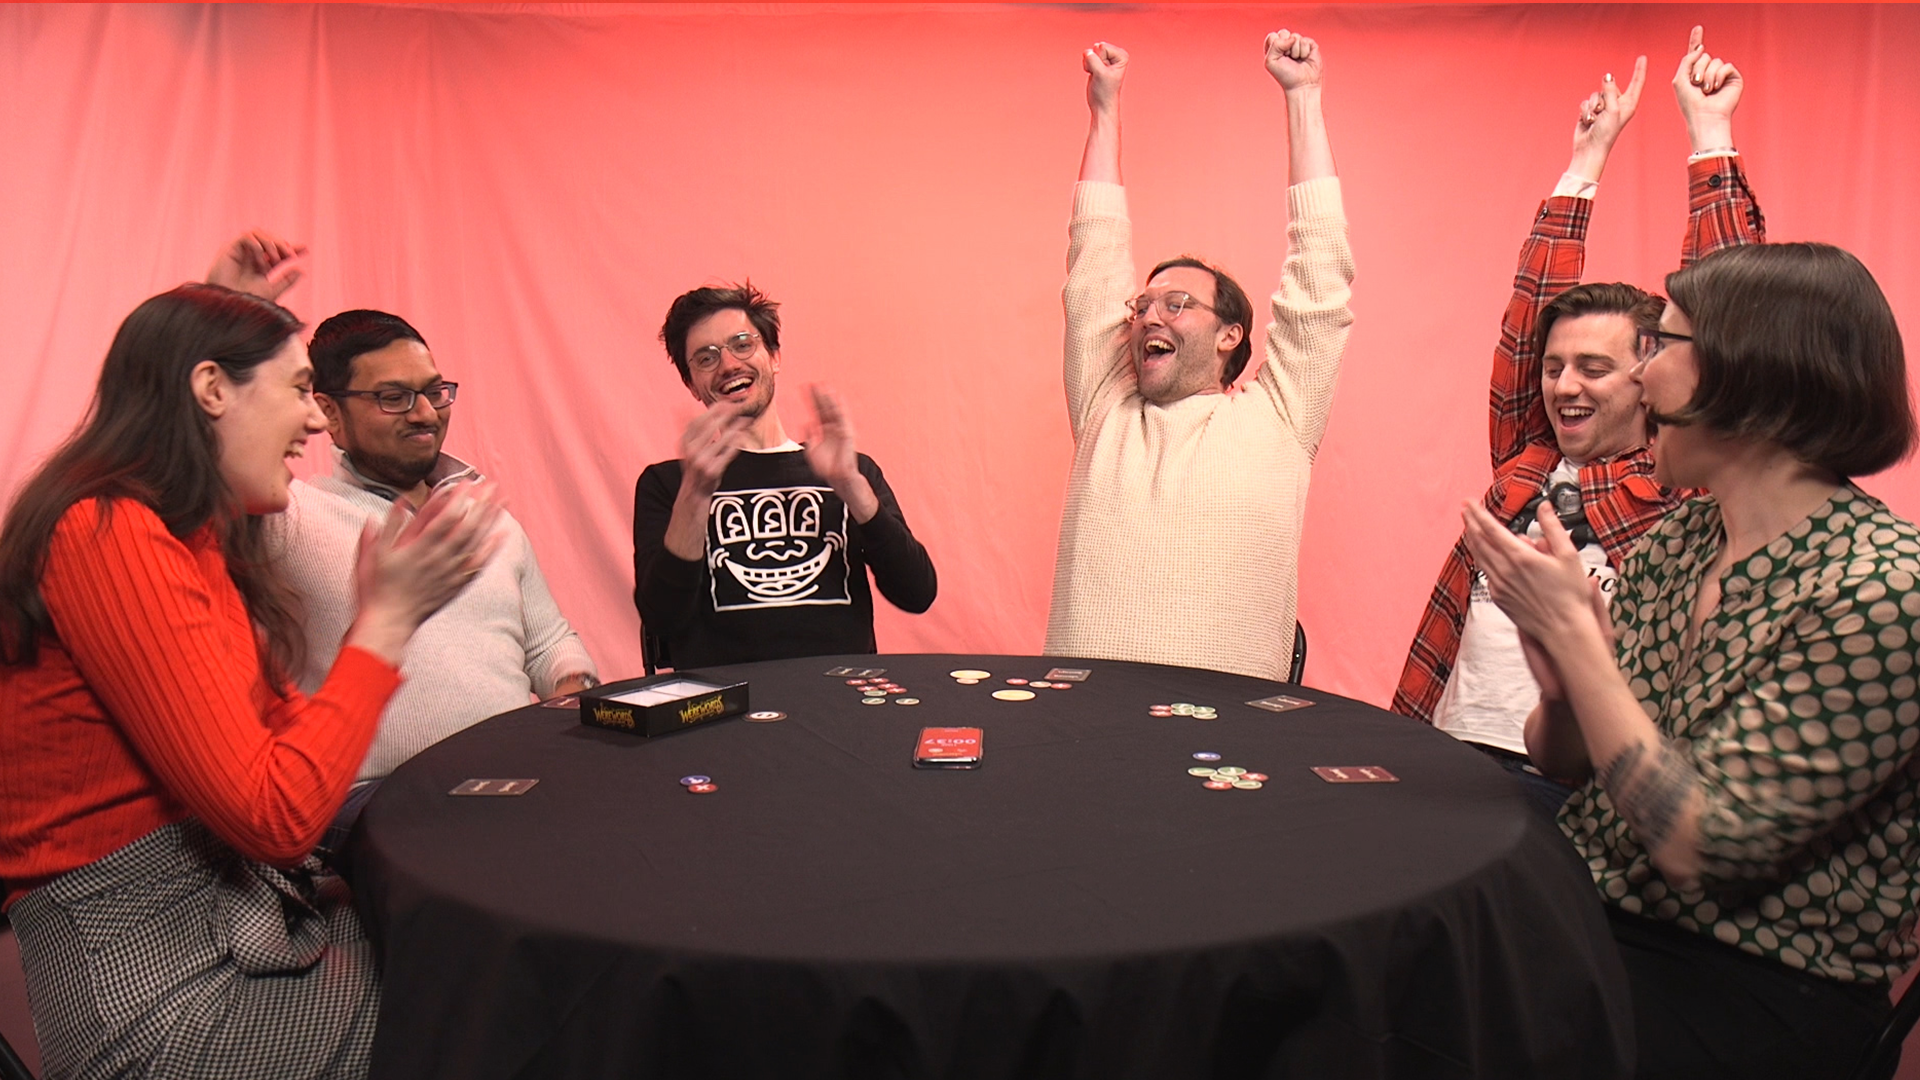 a group of six people sitting around a table playing a board game are cheering in celebration, some raising their arms over their heads in victory while others applaud.